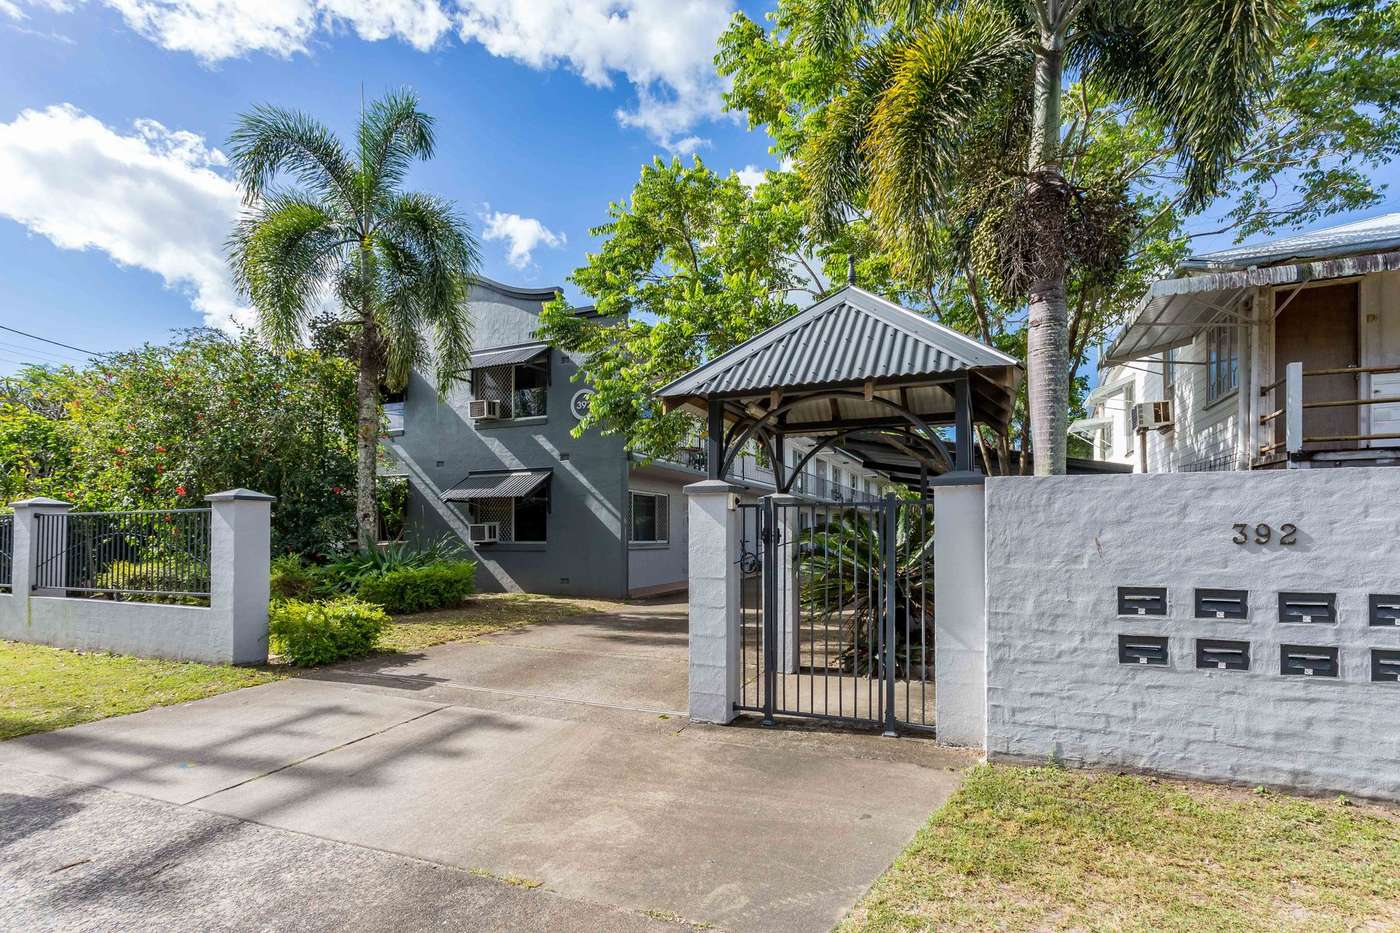 Main view of Homely unit listing, 6/392 Severin Street, Parramatta Park, QLD 4870